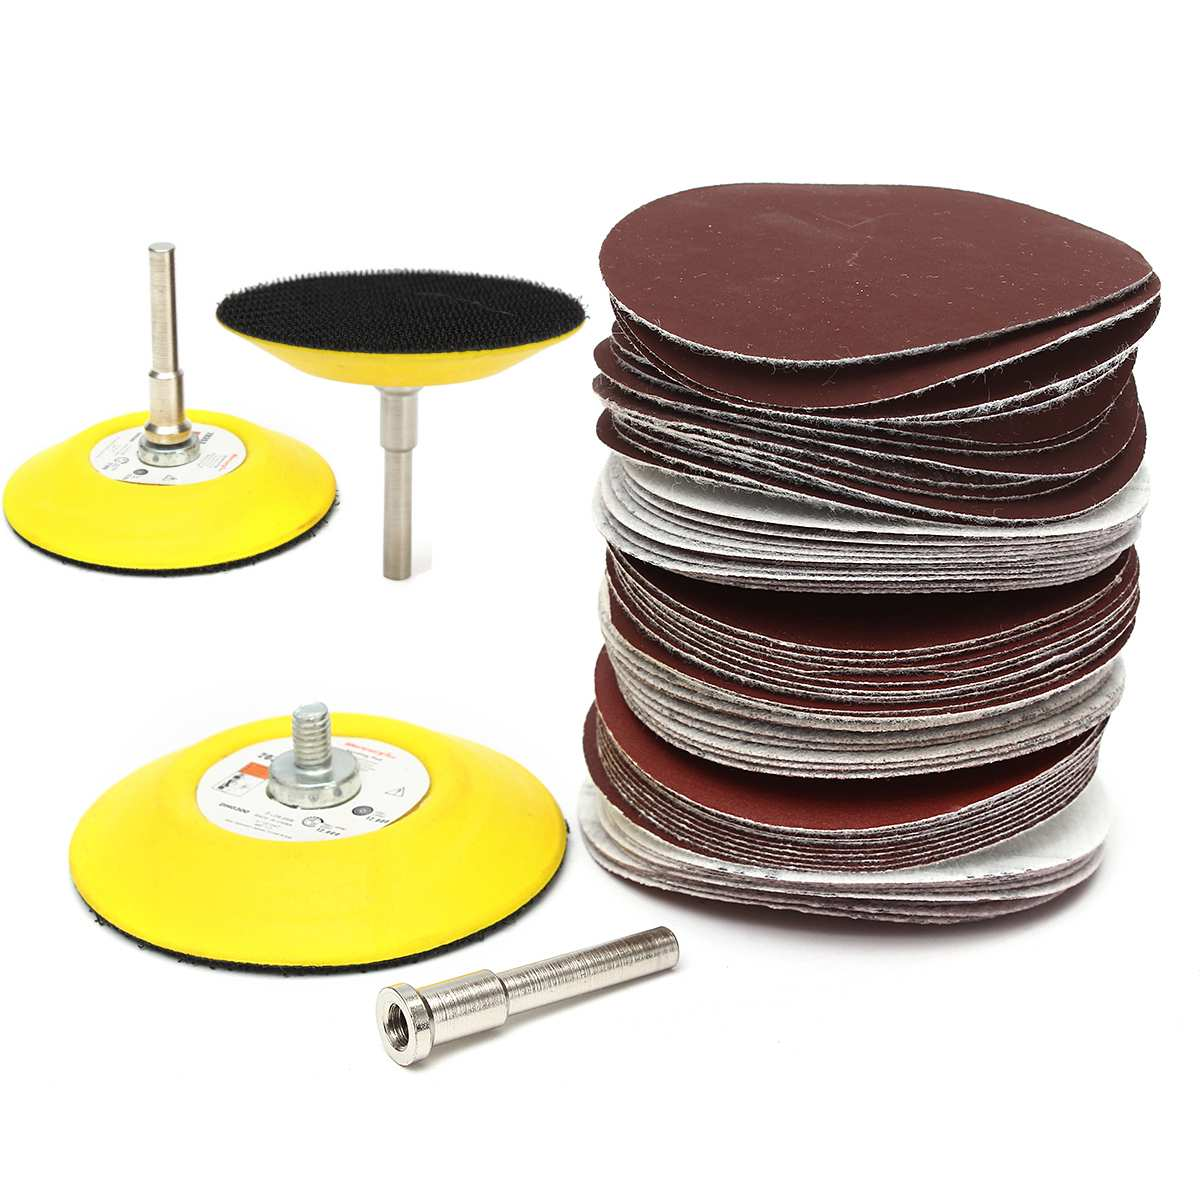 3 Inch 75mm 60PCS Sanding Pad Polishing Grit Disc Polishing Sandpaper Shank Set Power Tools Accessories Abrasive Tools Kit